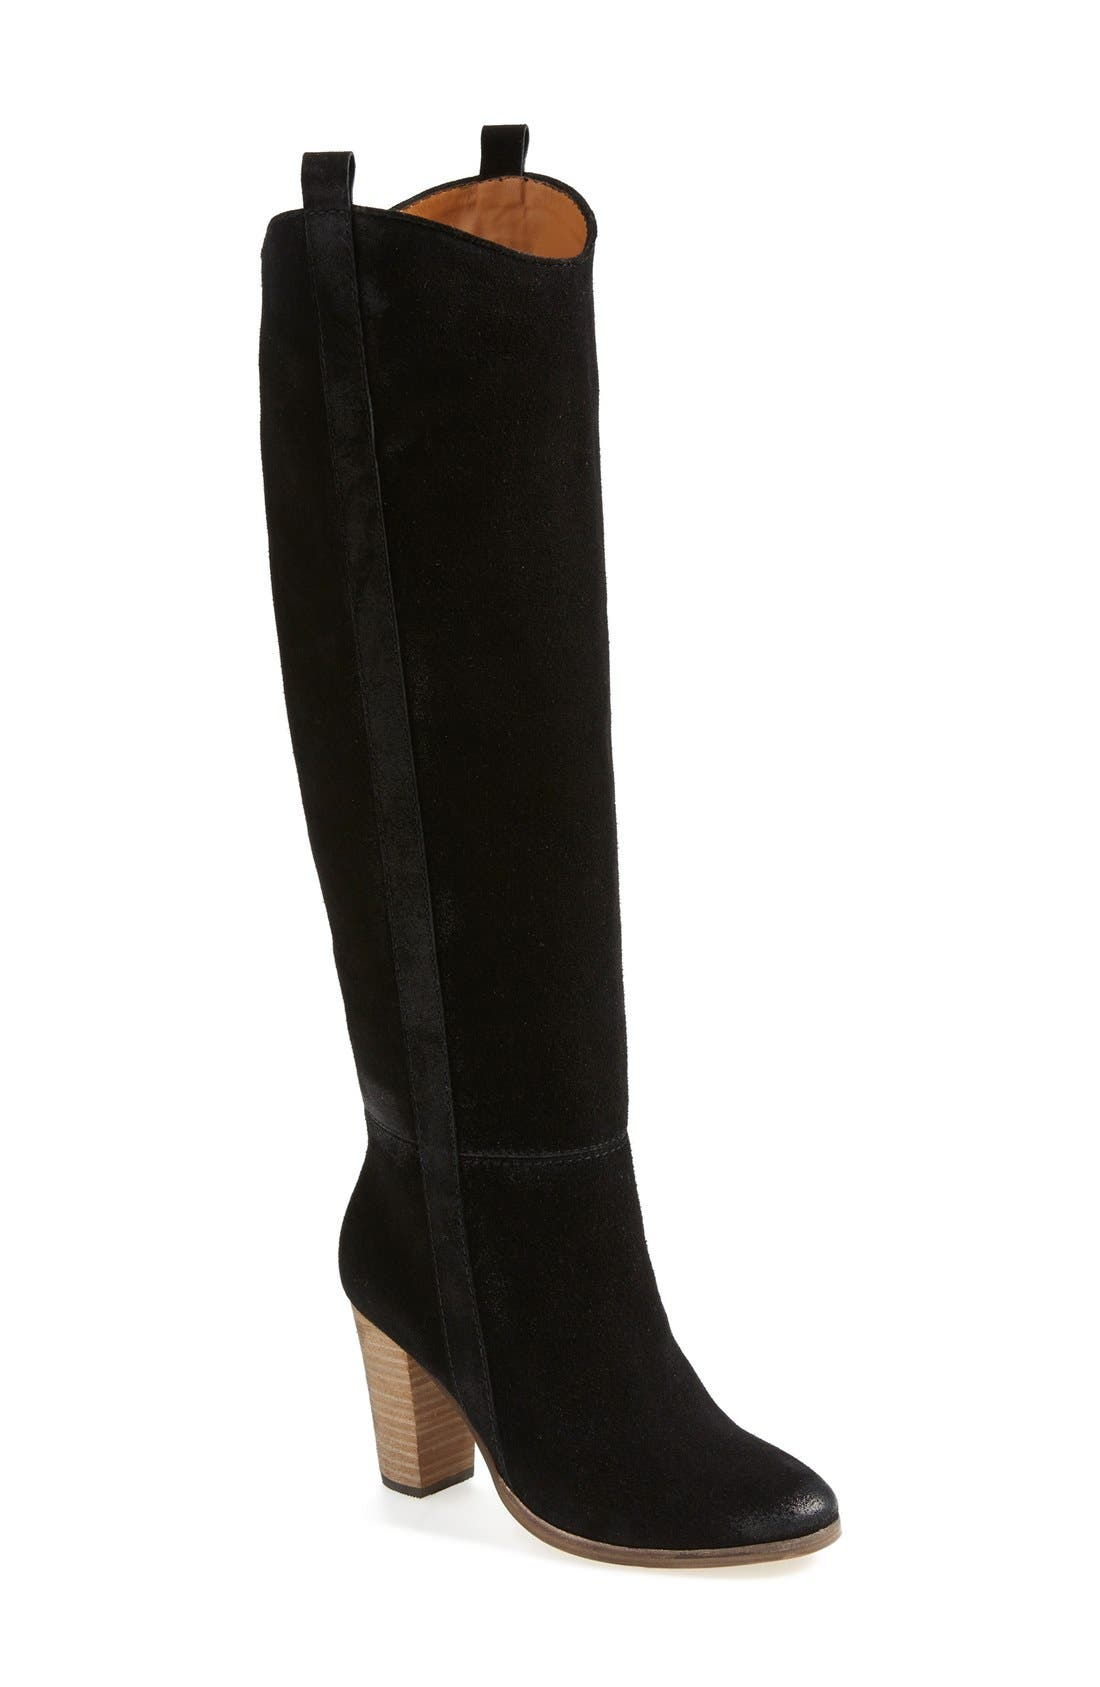 Main Image - DV by Dolce Vita 'Myste' Boot (Women)